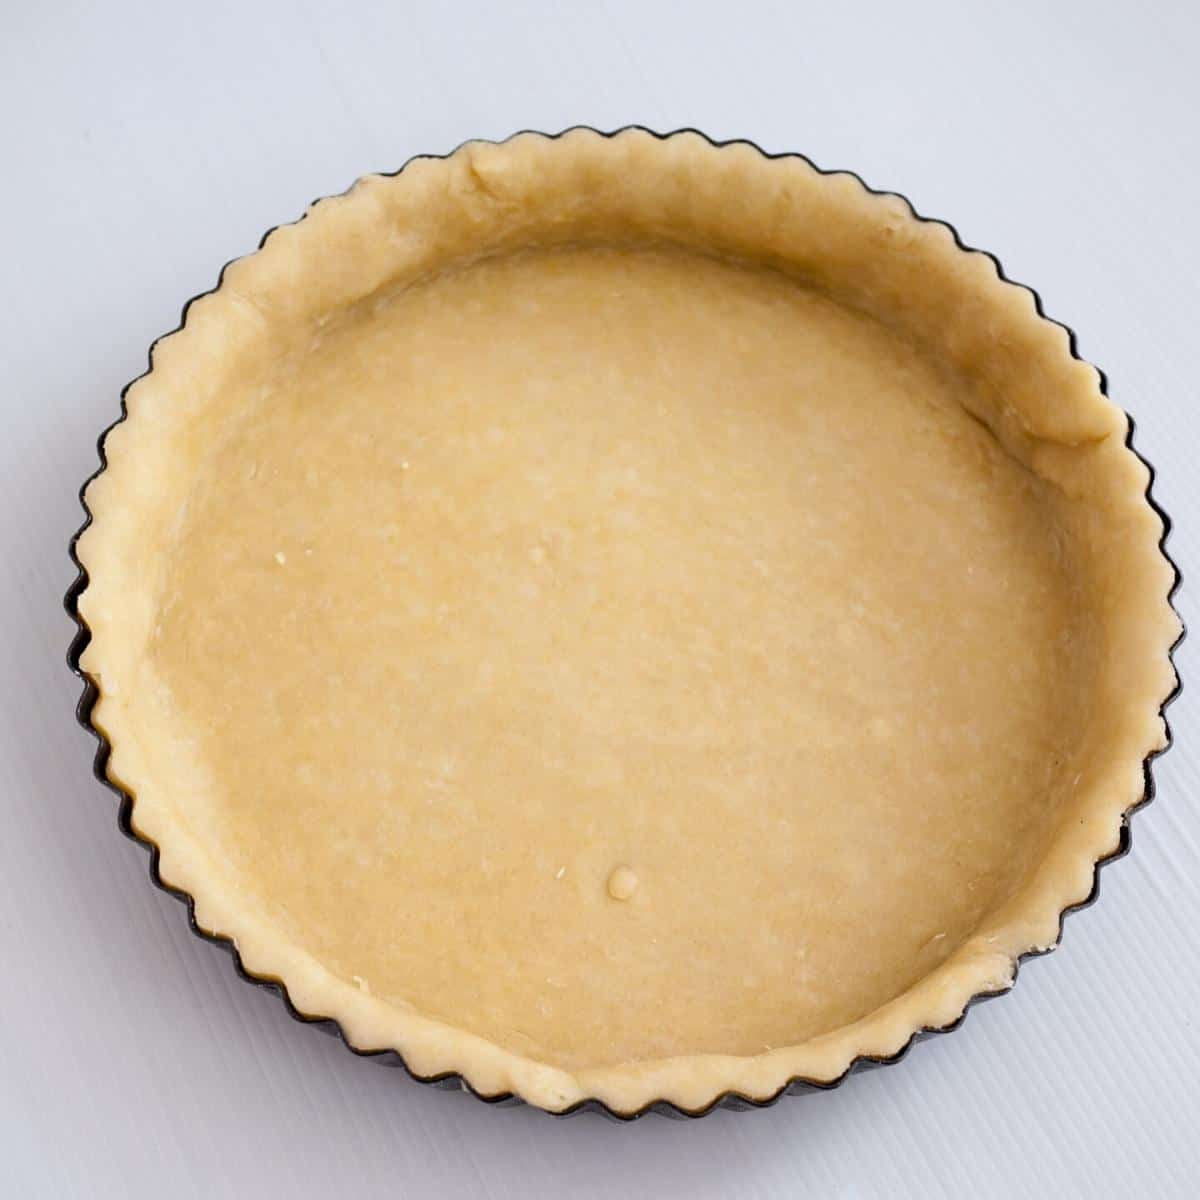 A pre-baked quiche crust in a quiche pan.